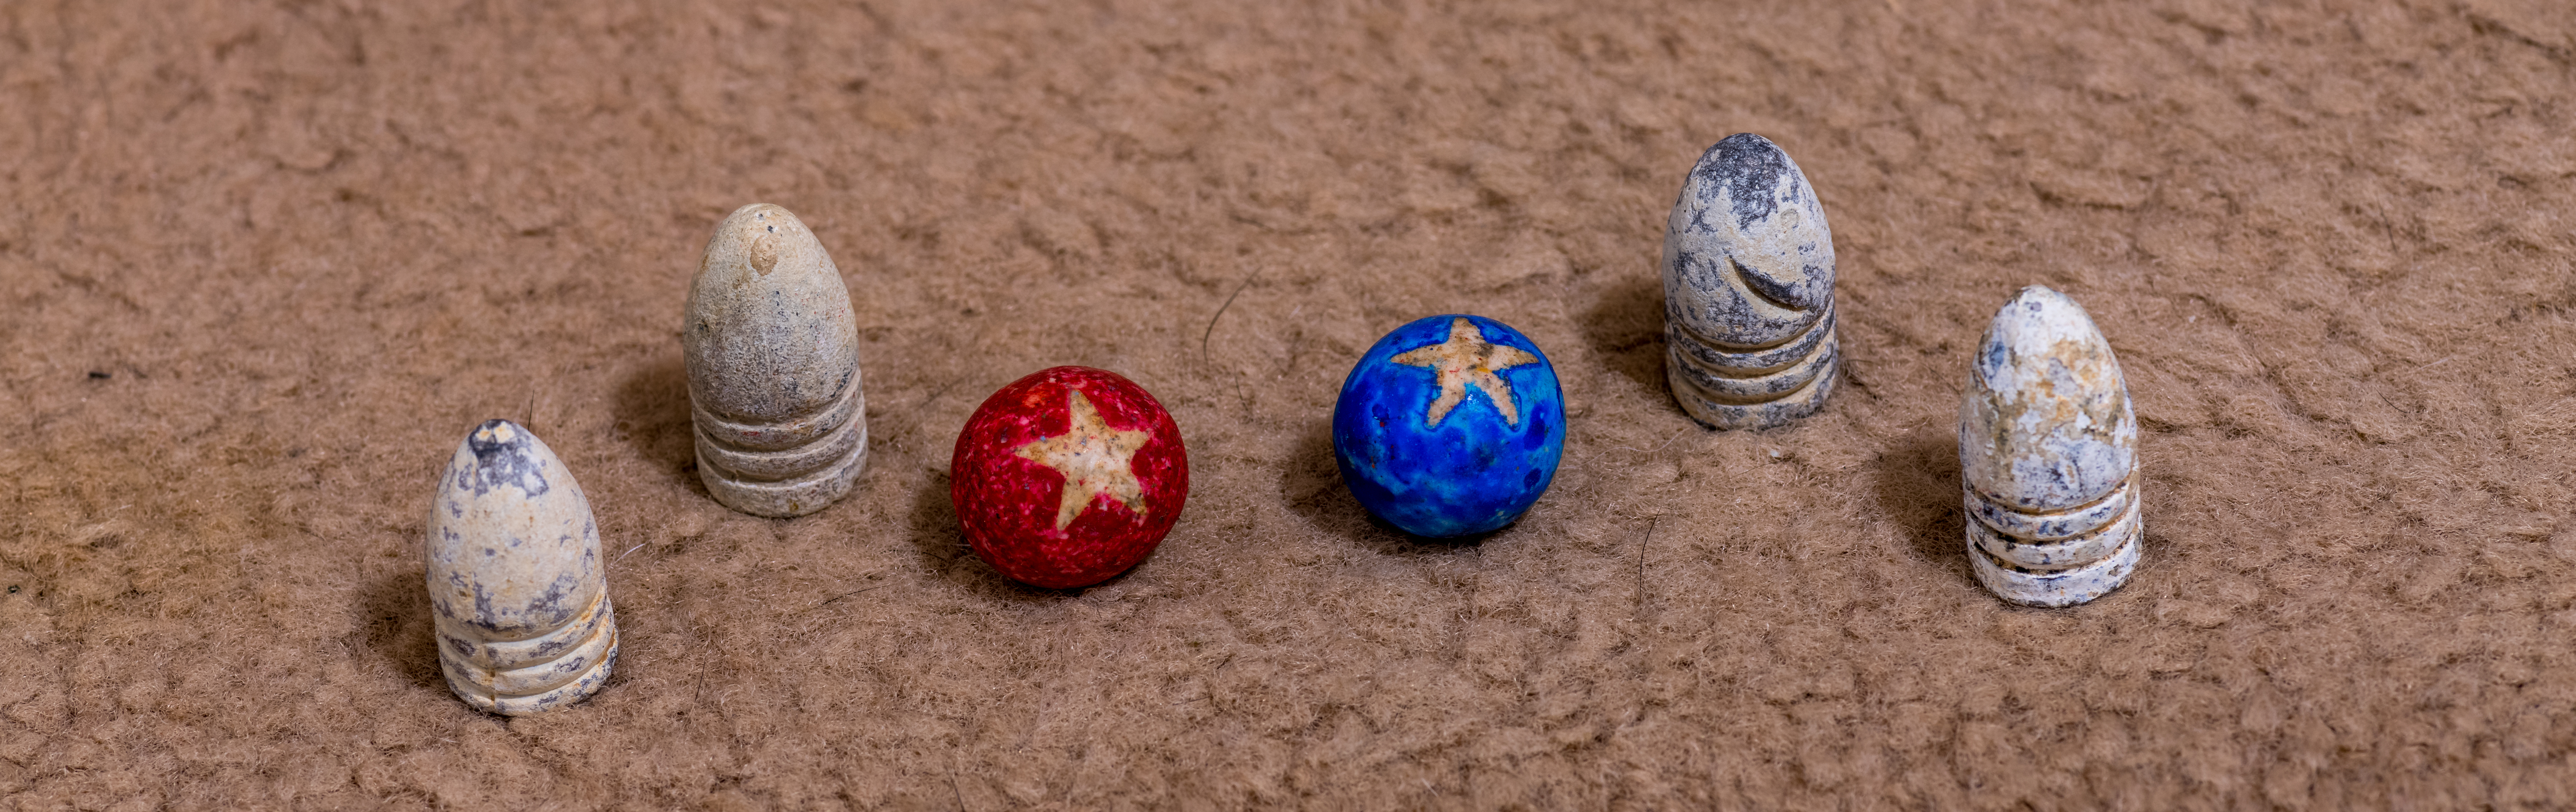 File Civil War Minie Ball And Clay Marbles 2 Jpg Wikimedia Commons